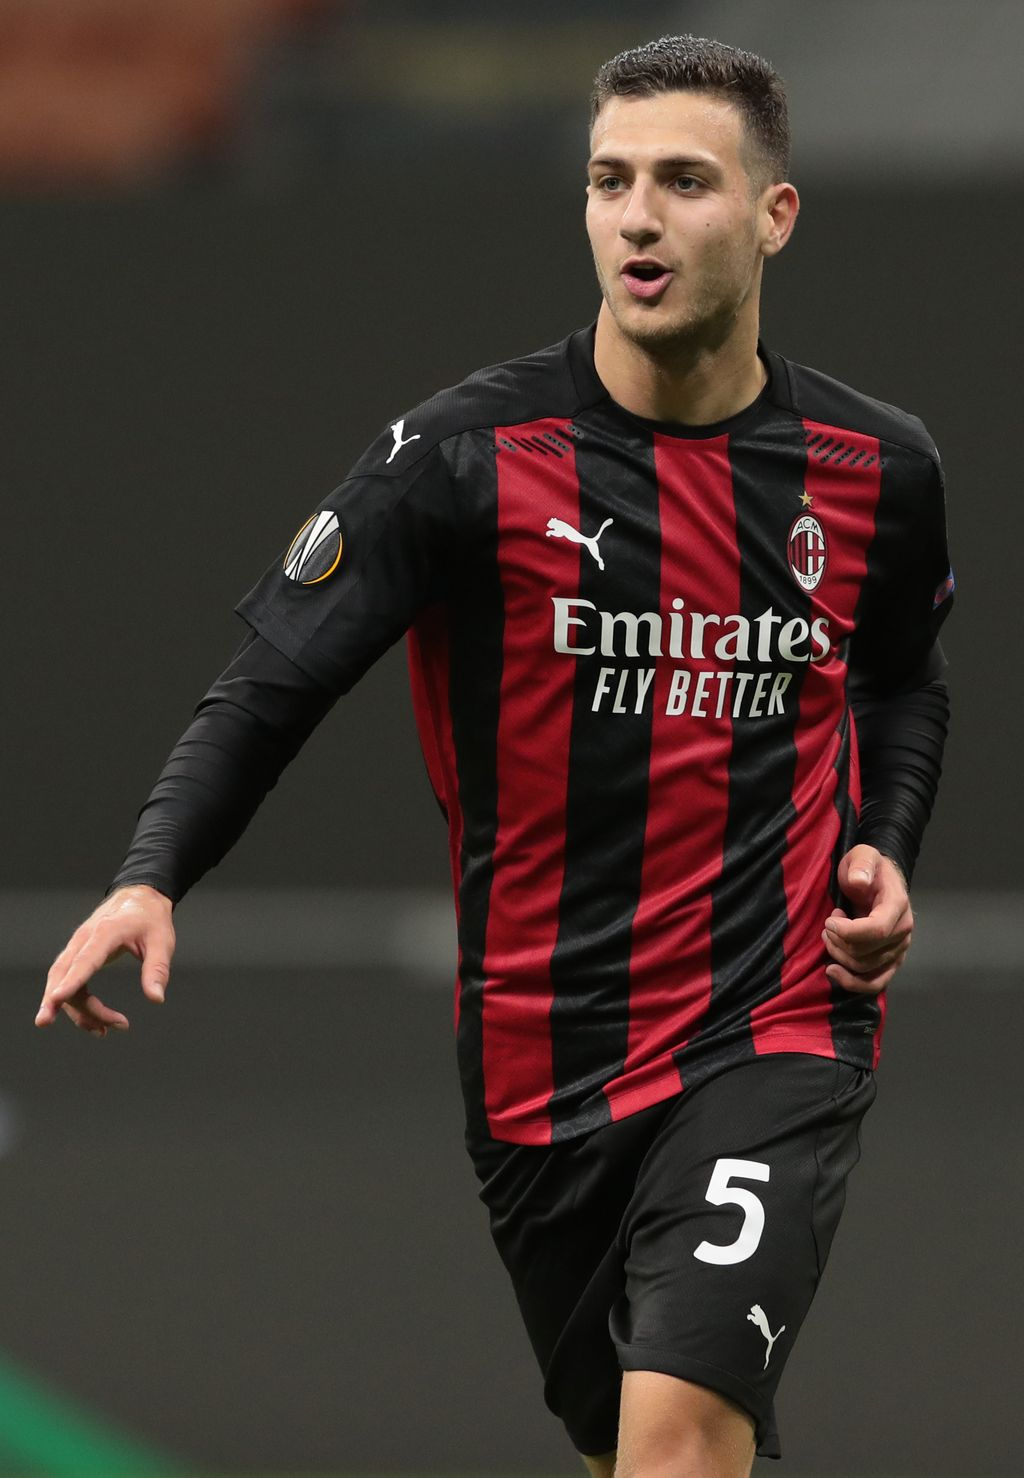 MILAN, ITALY - OCTOBER 29:  Diogo Dalot of AC Milan celebrates scoring his team's third goal during the UEFA Europa League Group H stage match between AC Milan and AC Sparta Praha at San Siro Stadium on October 29, 2020 in Milan, Italy. (Photo by Emilio Andreoli/Getty Images)